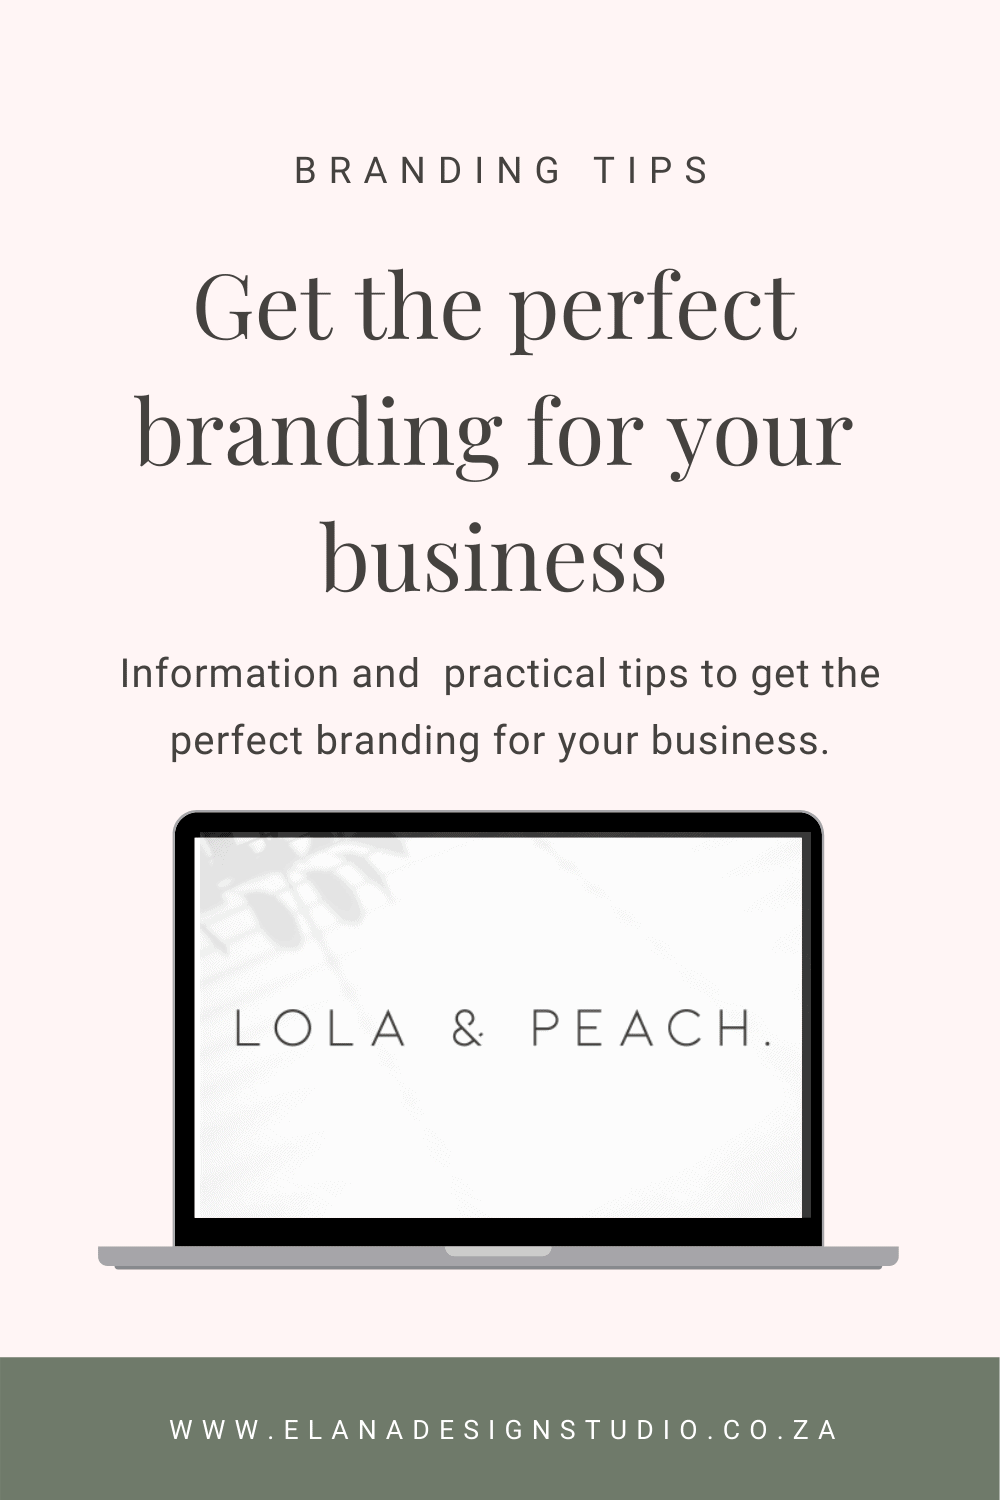 Get the perfect branding for your business